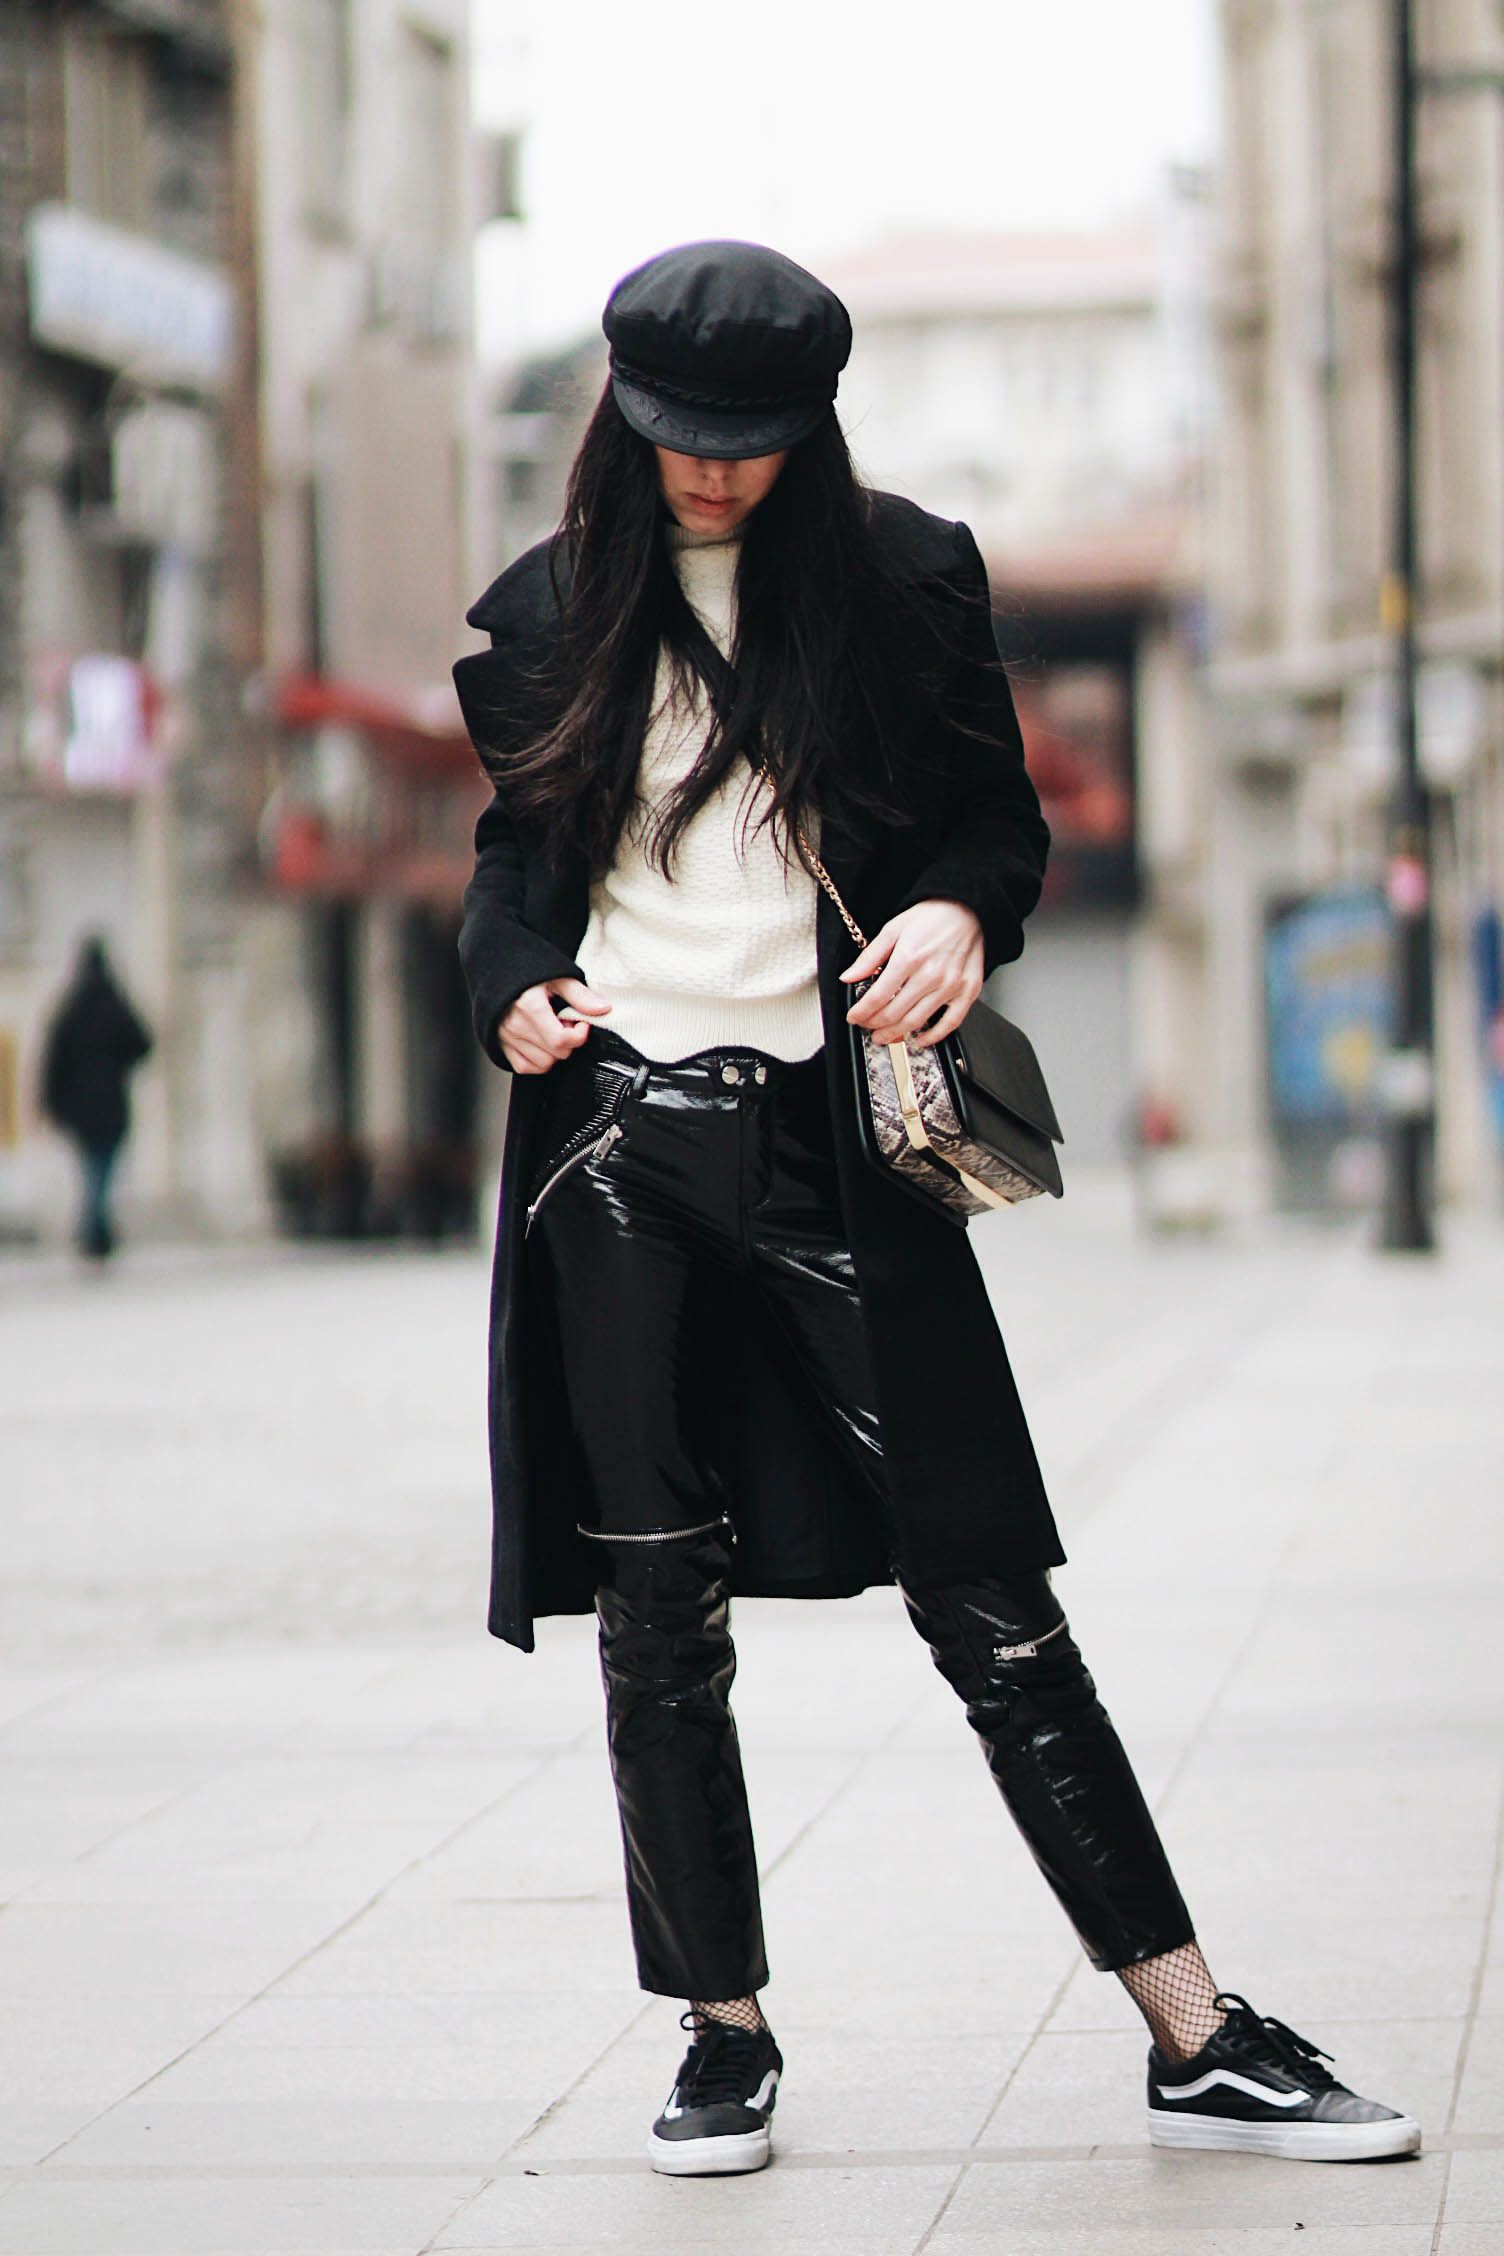 Style outfit leather pants fishnets, patent leather, street fashion, trench coat